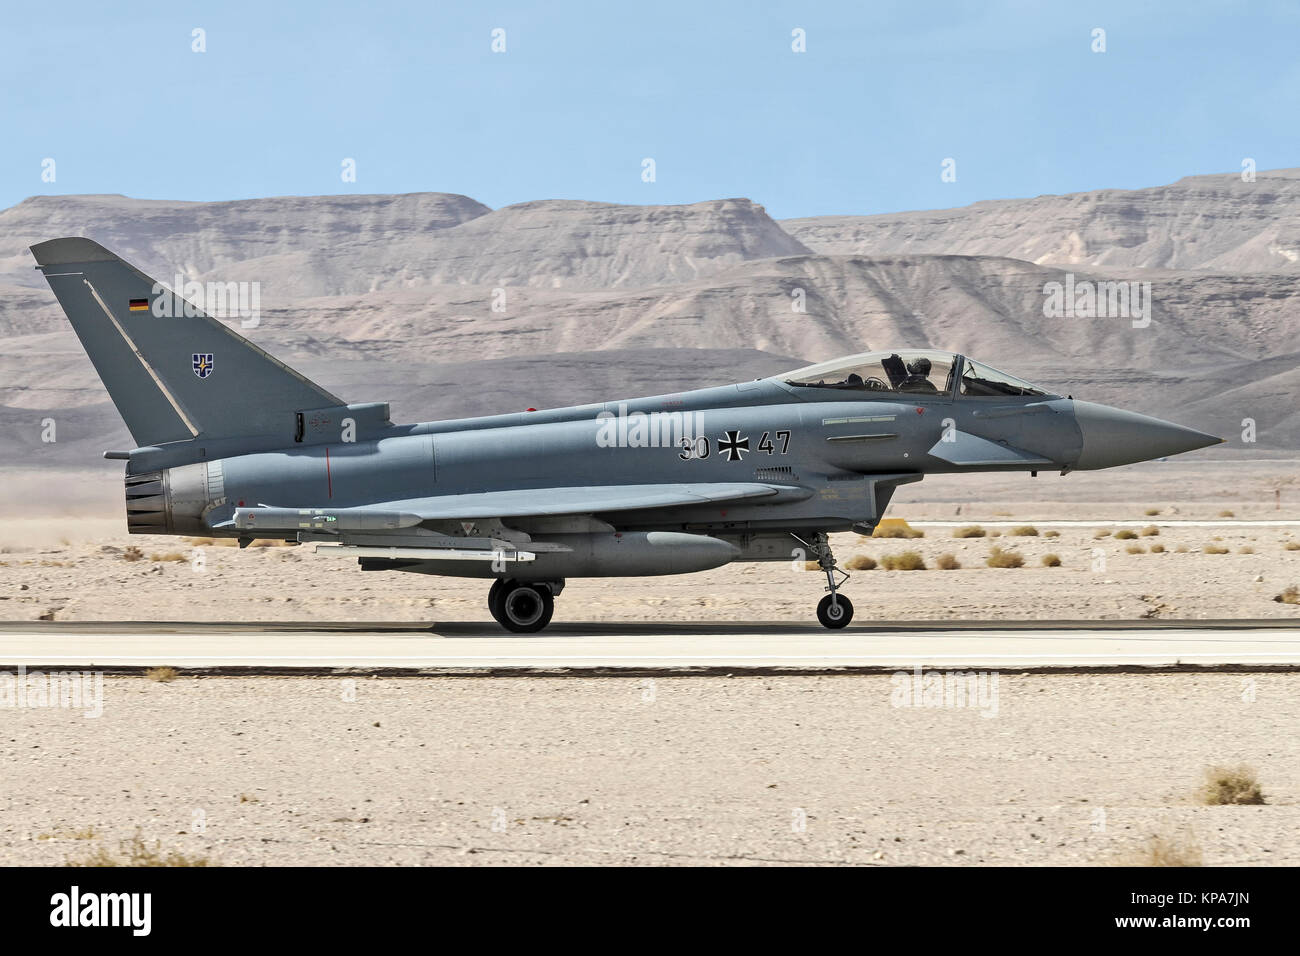 German Air Force, Eurofighter Typhoon EF2000 a twin-engine, canard-delta wing, multirole fighter. Photographed at - Stock Image